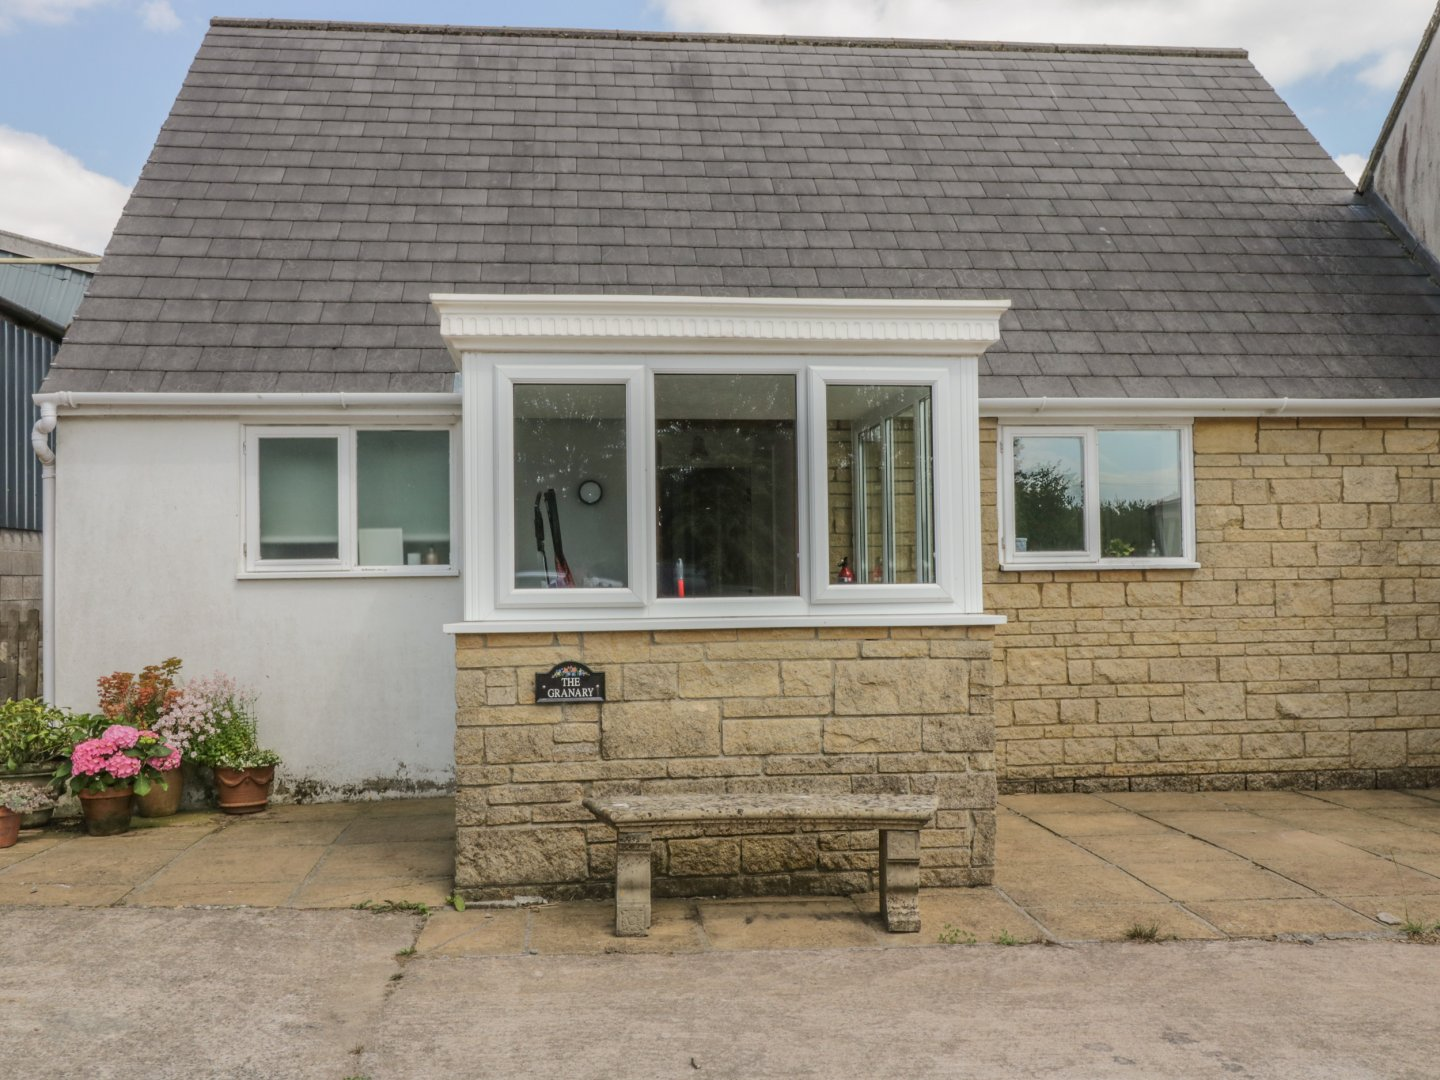 Self Catering The Granary In Shepton Mallet